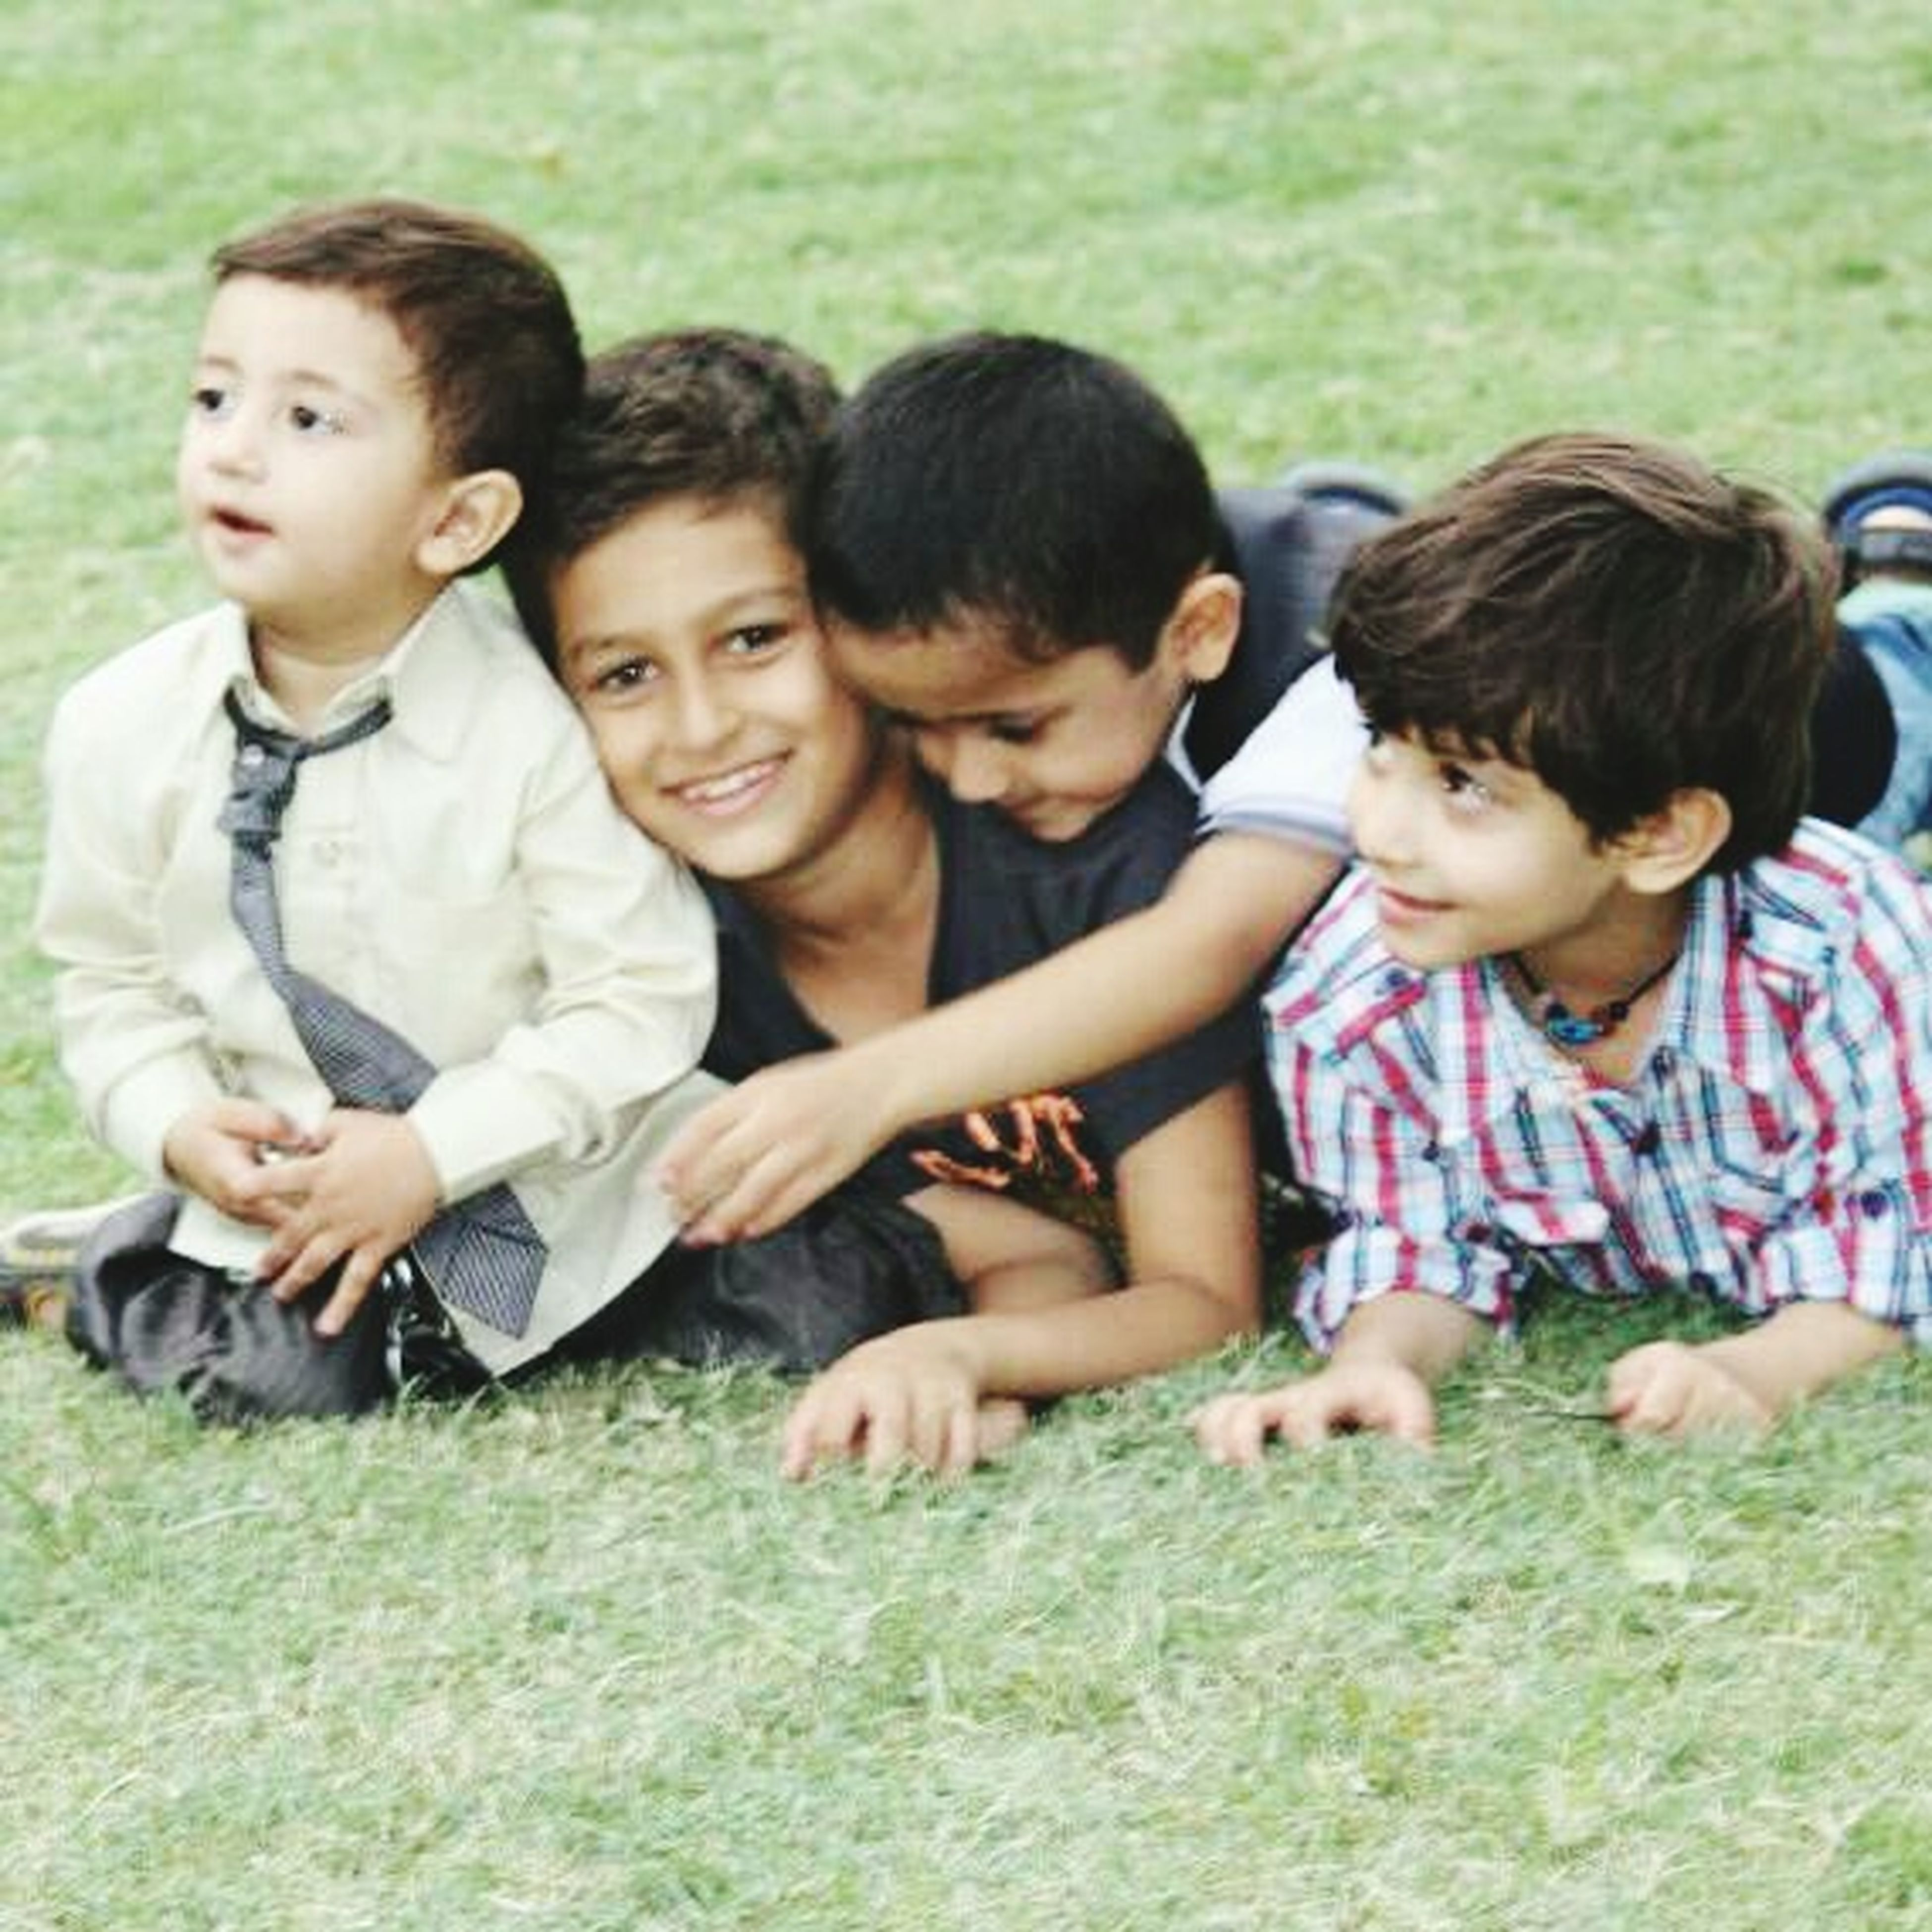 togetherness, bonding, childhood, leisure activity, lifestyles, person, love, elementary age, girls, family, boys, grass, casual clothing, smiling, happiness, friendship, sibling, innocence